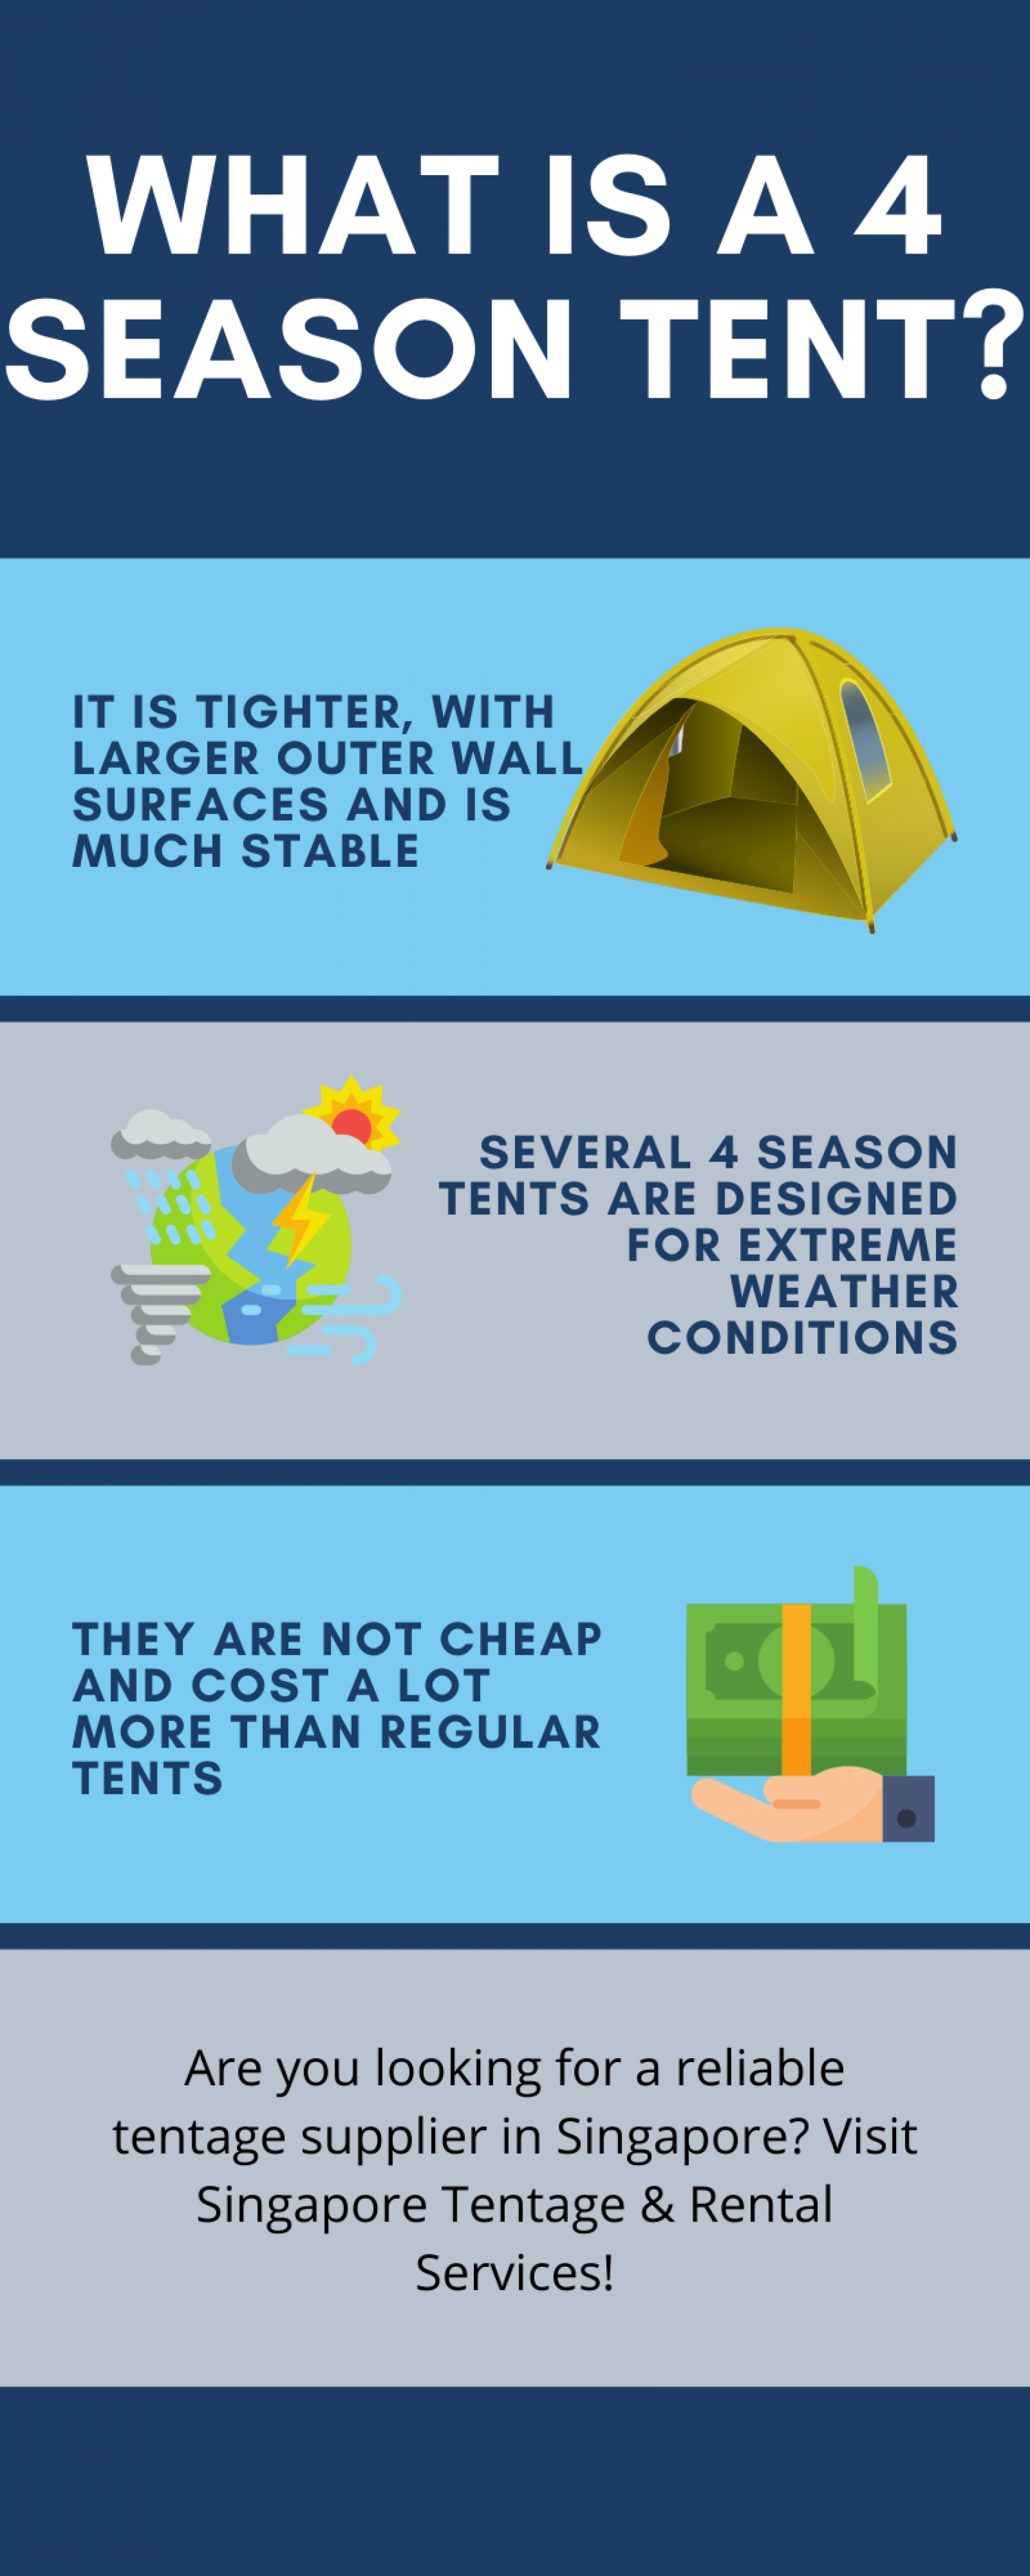 What Is A 4 Season Tent? Infographic